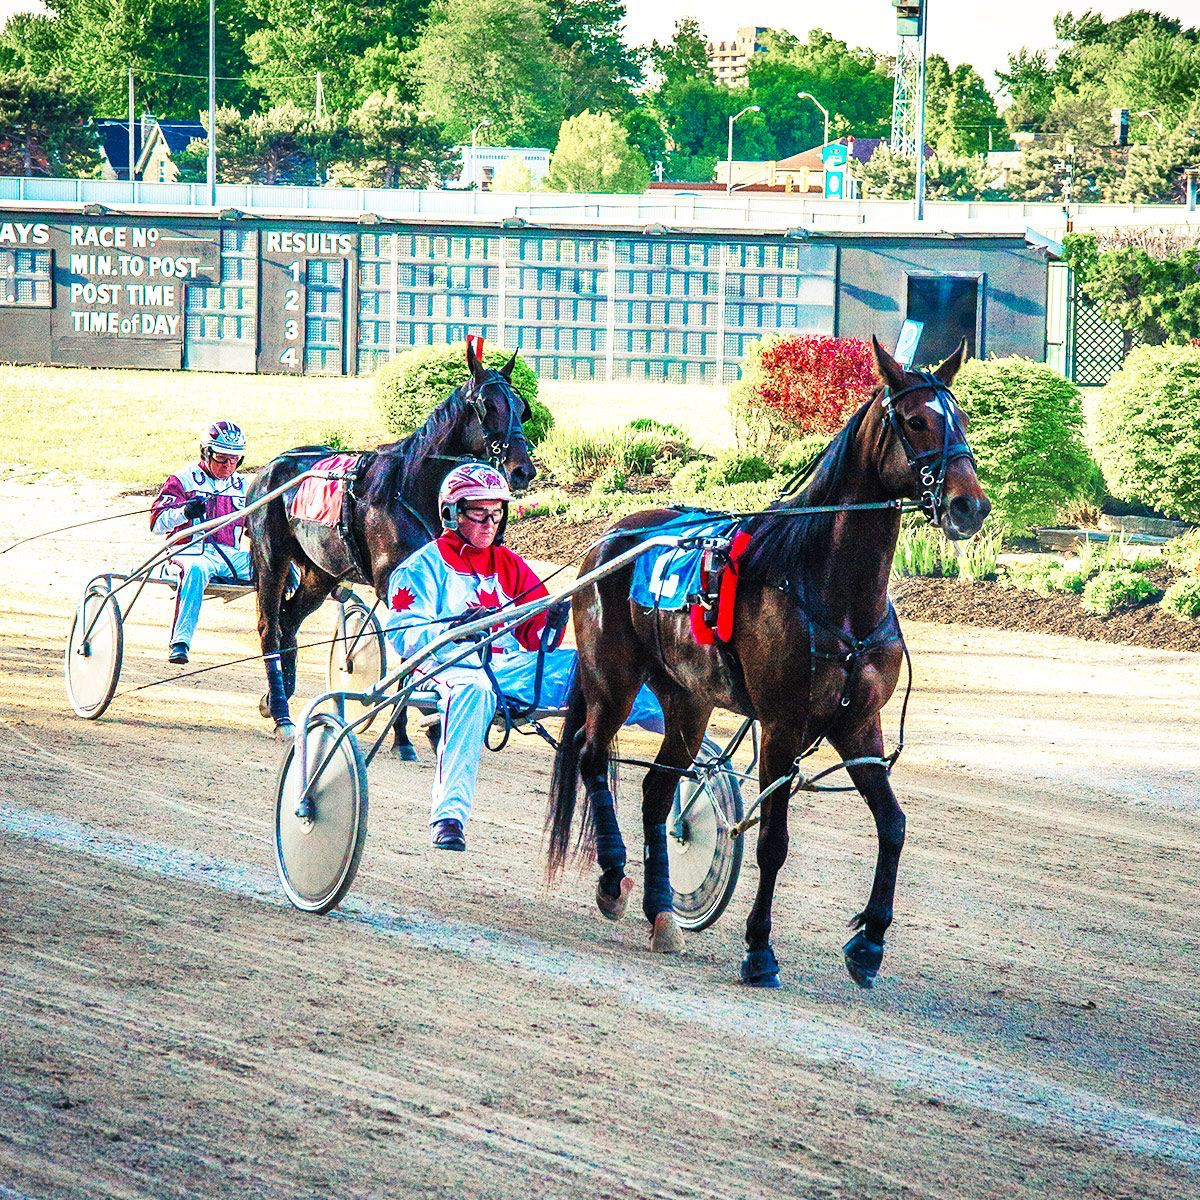 Pin by Vanessa on Harness racing (With images) Harness